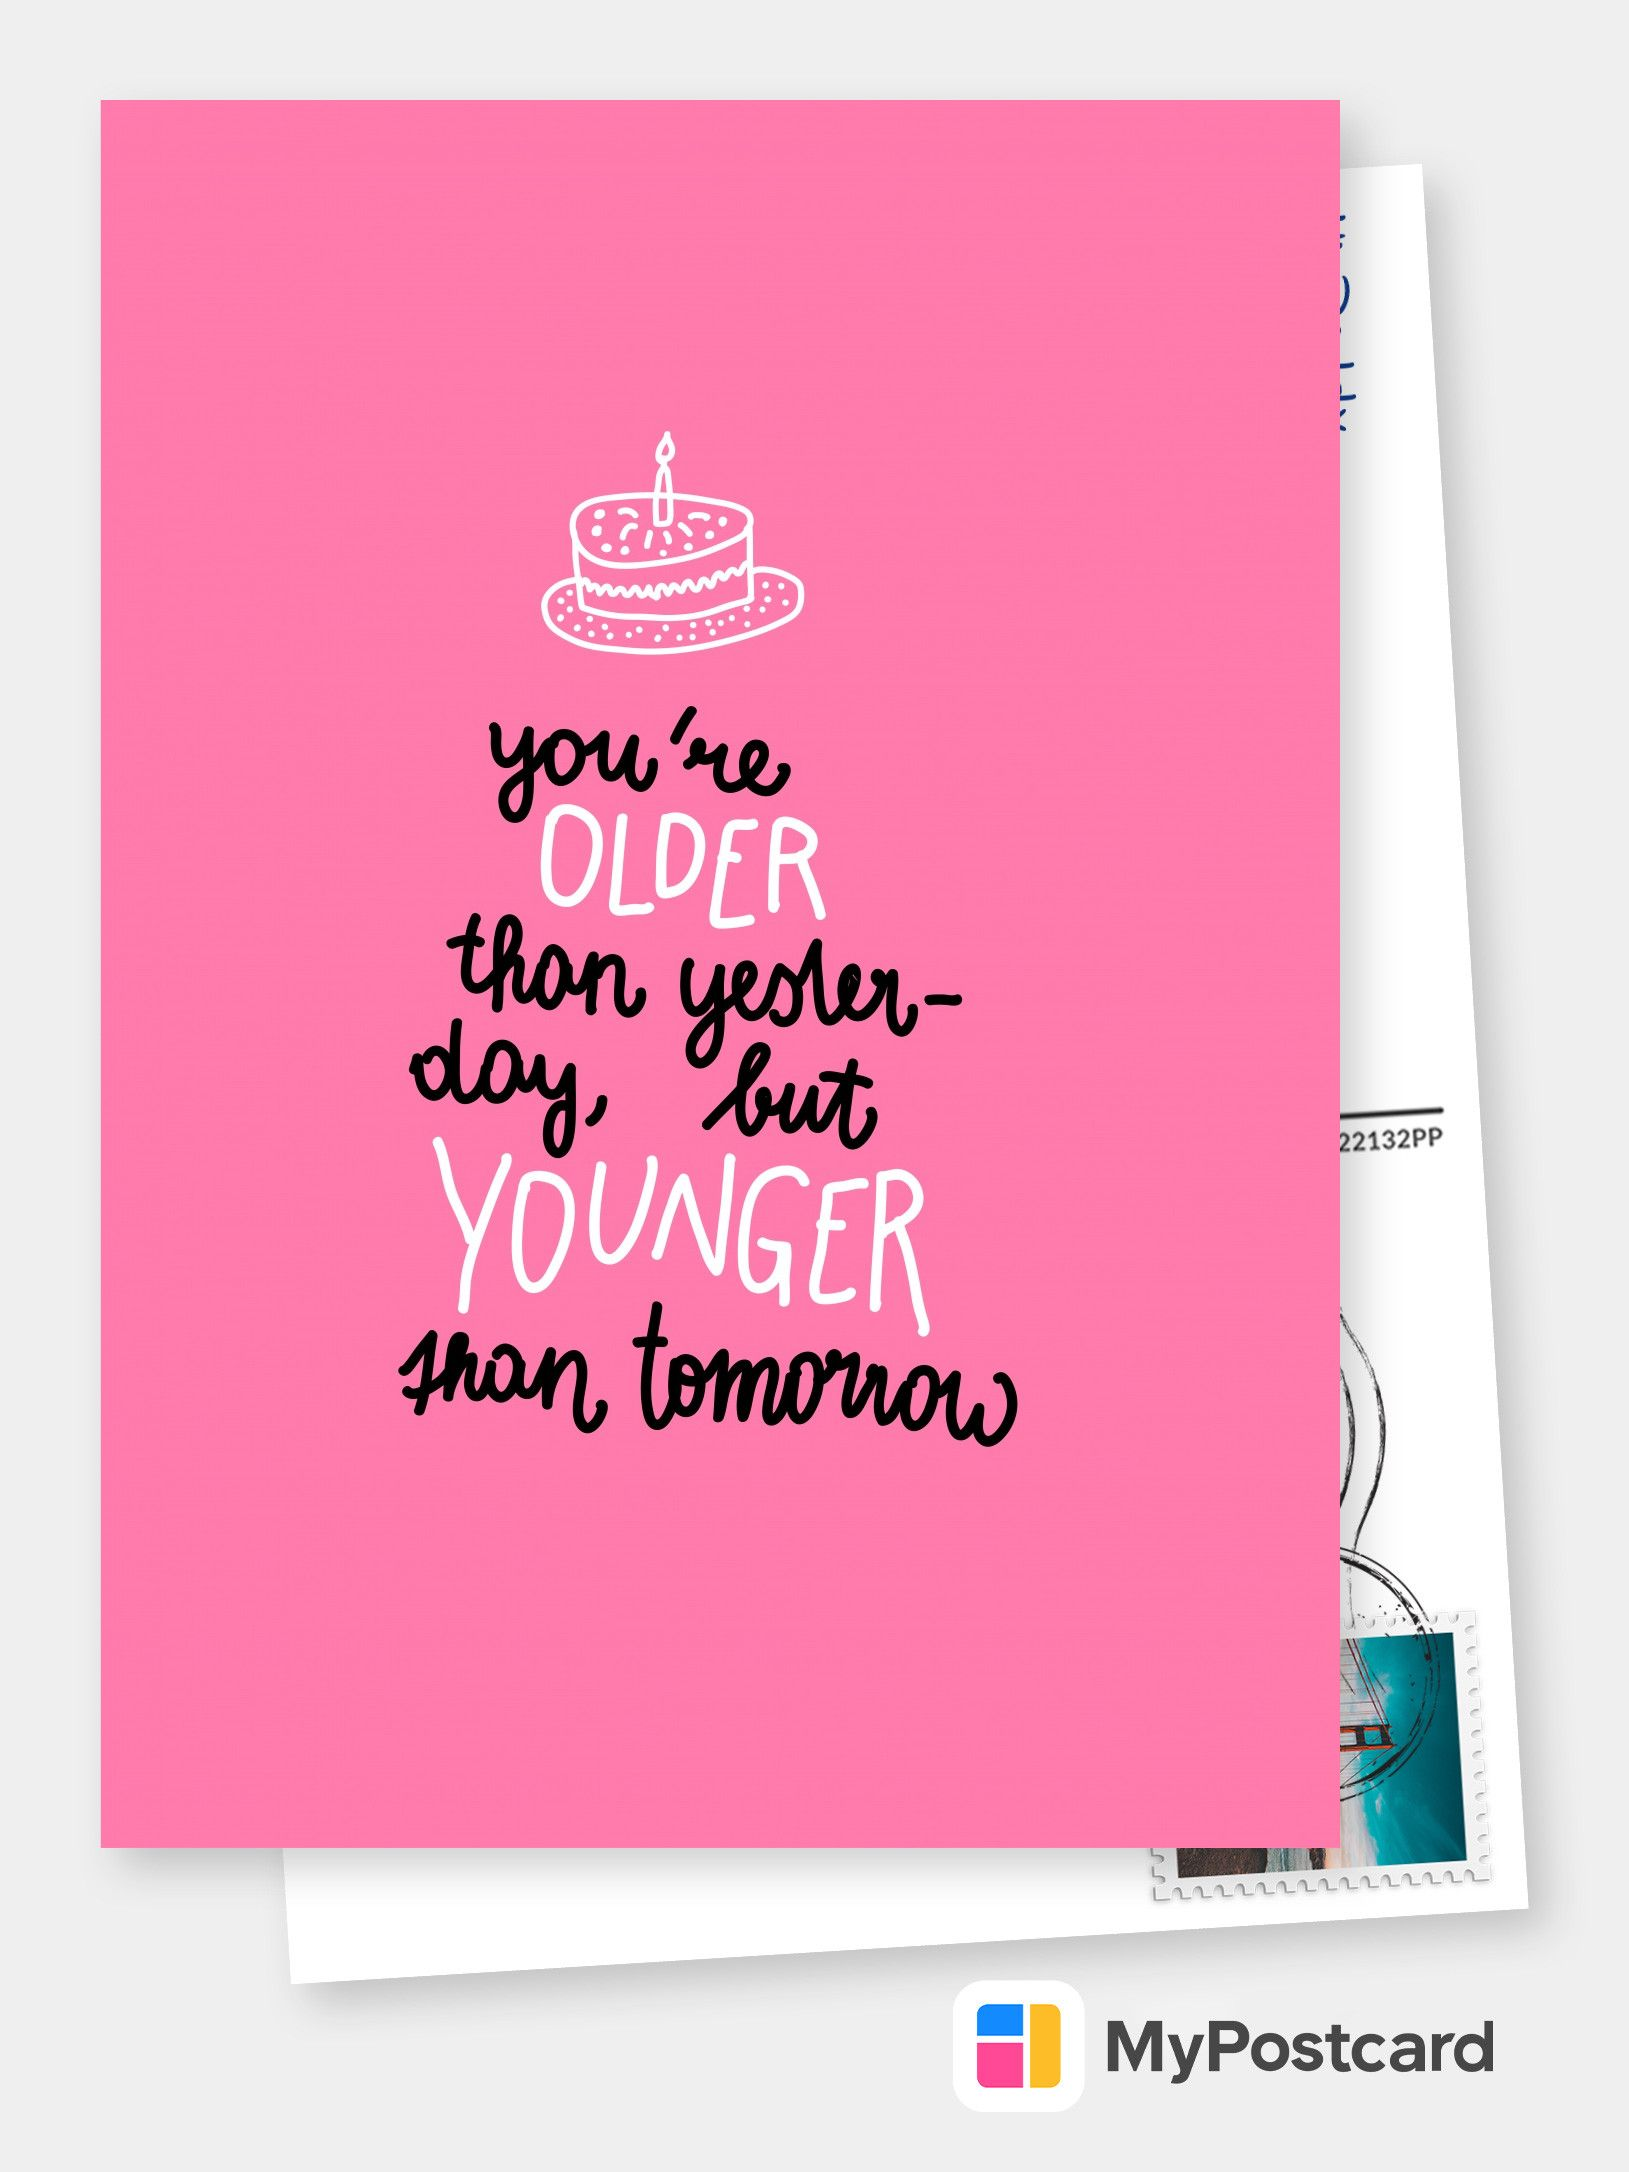 Printed Birthday Cards Online Free International Shipping Send Cards Online Mailed For You Internationally In 2021 Grandpa Birthday Card Birthday Card Sayings Birthday Card For Aunt